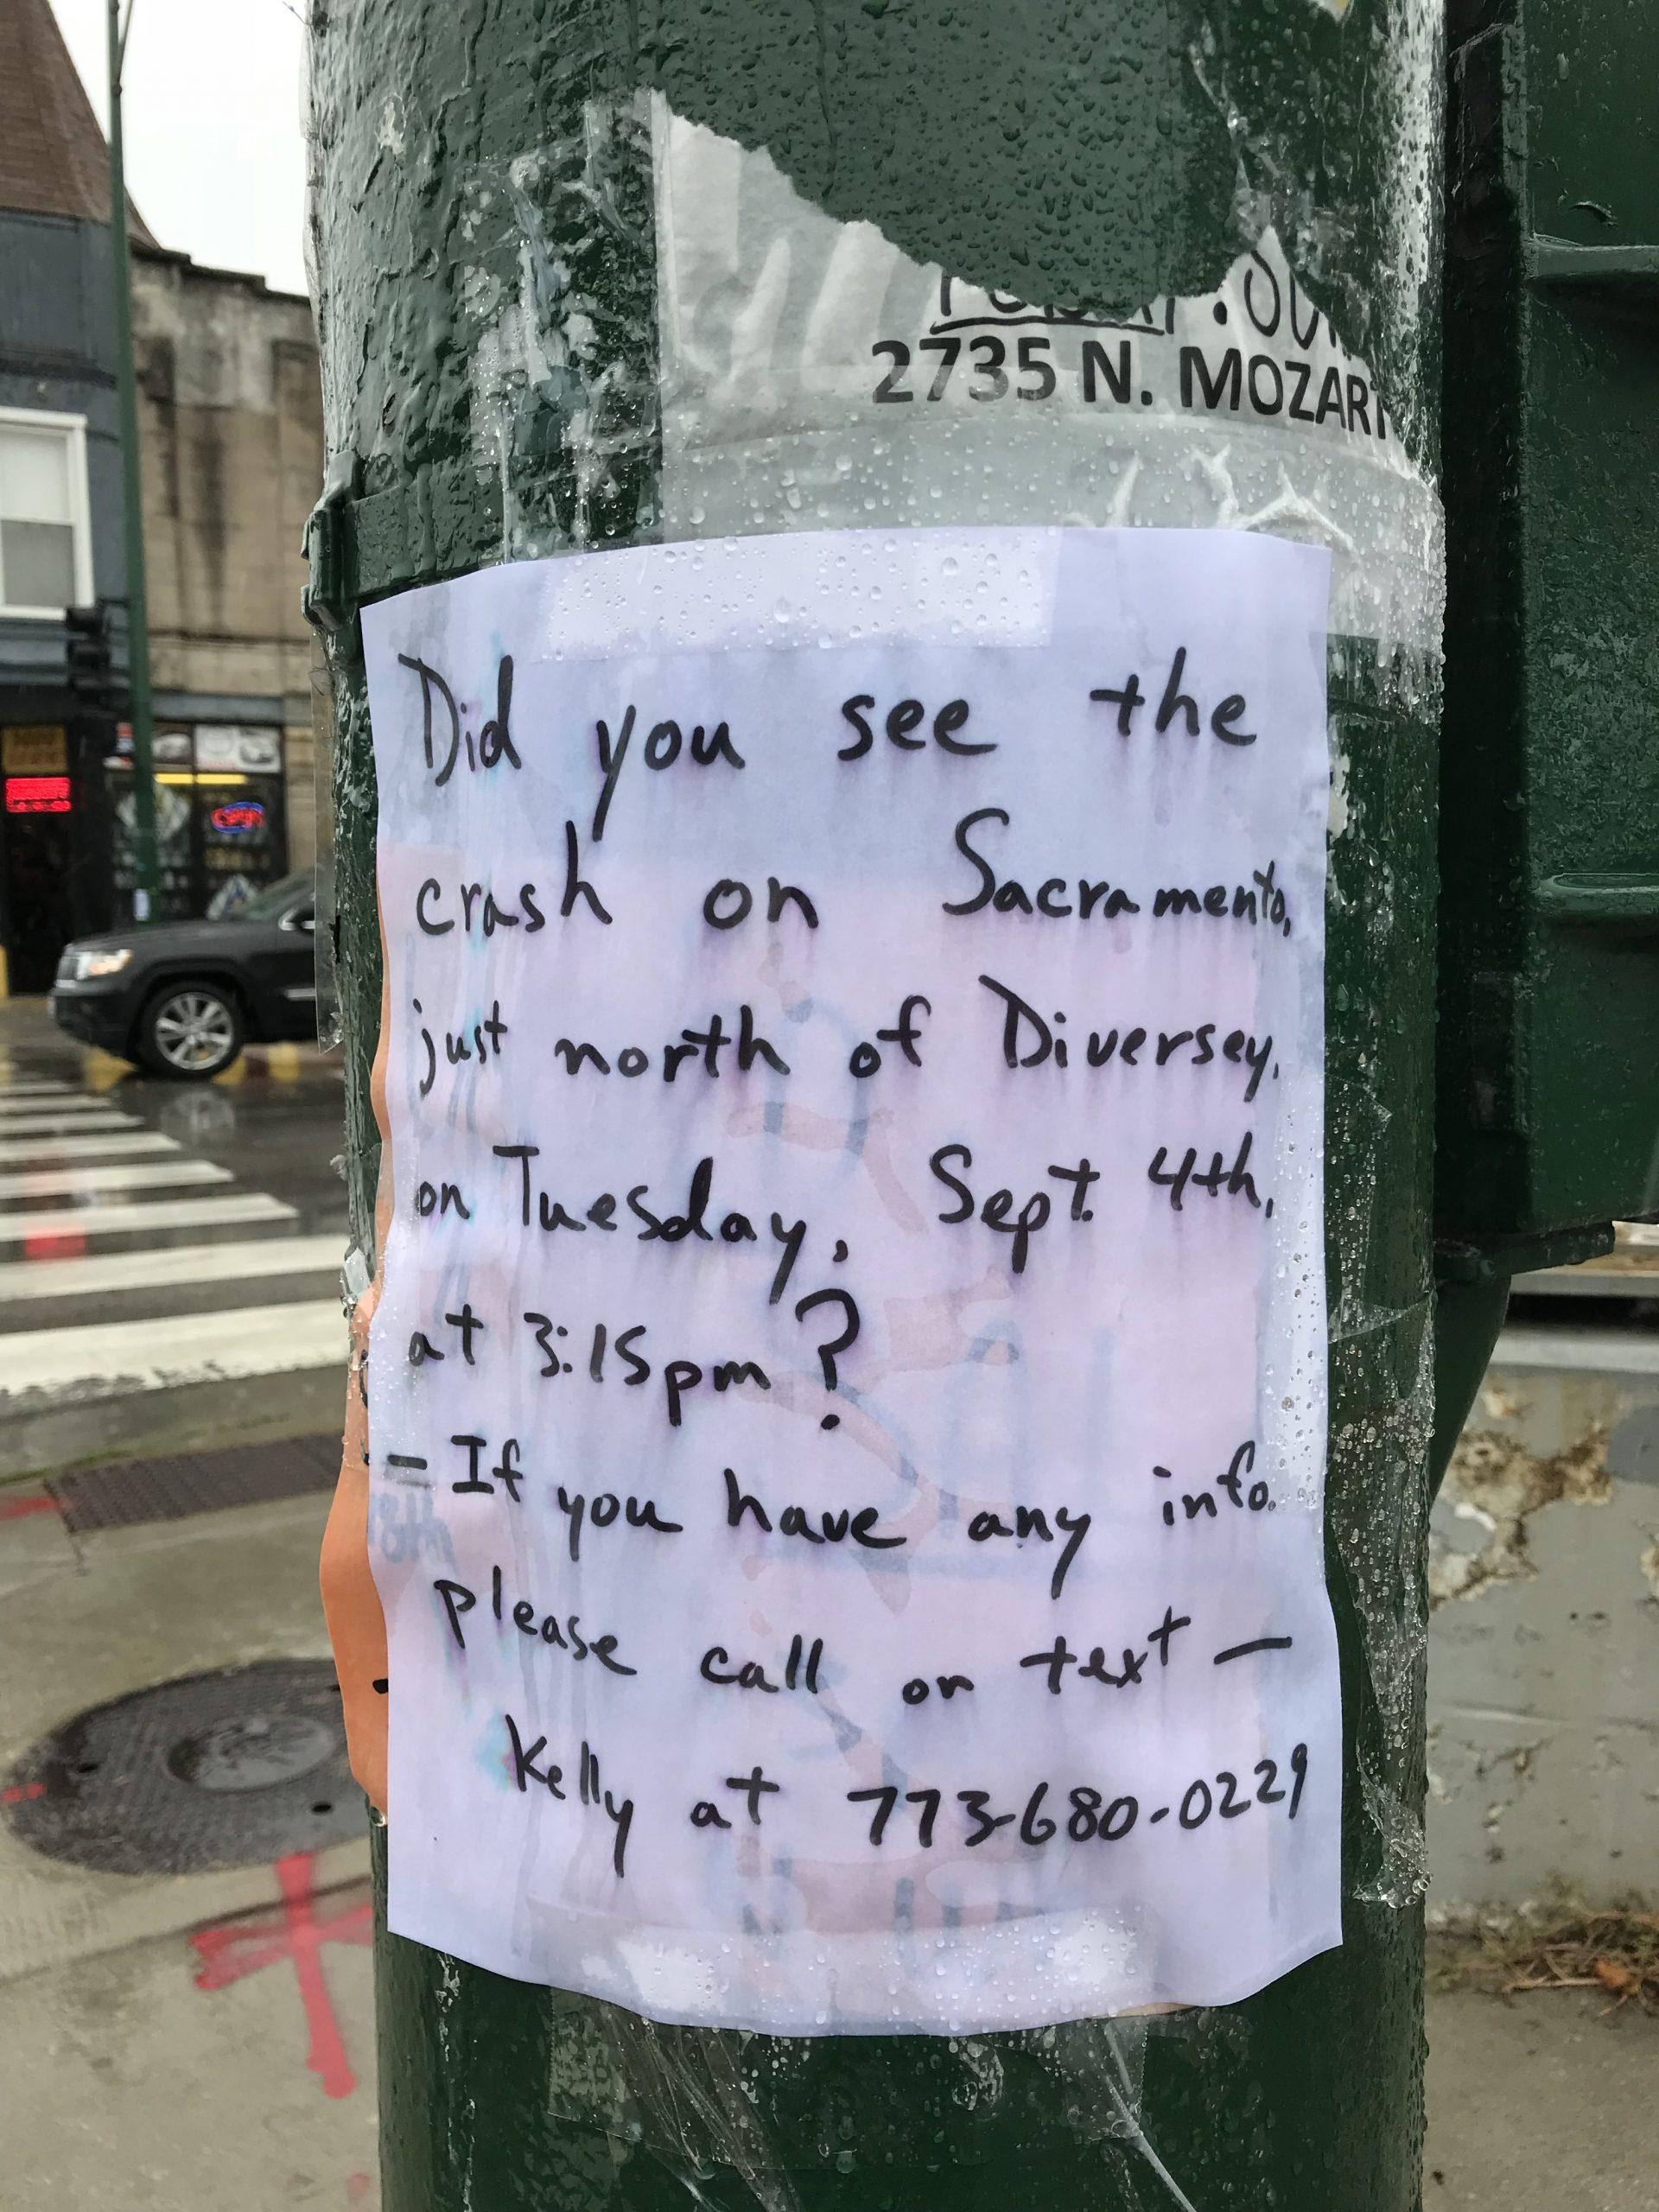 Flyer posted by Diversey and Sacramento in Logan Square, where the driver of a stolen vehicle seriously injured a female cyclist.